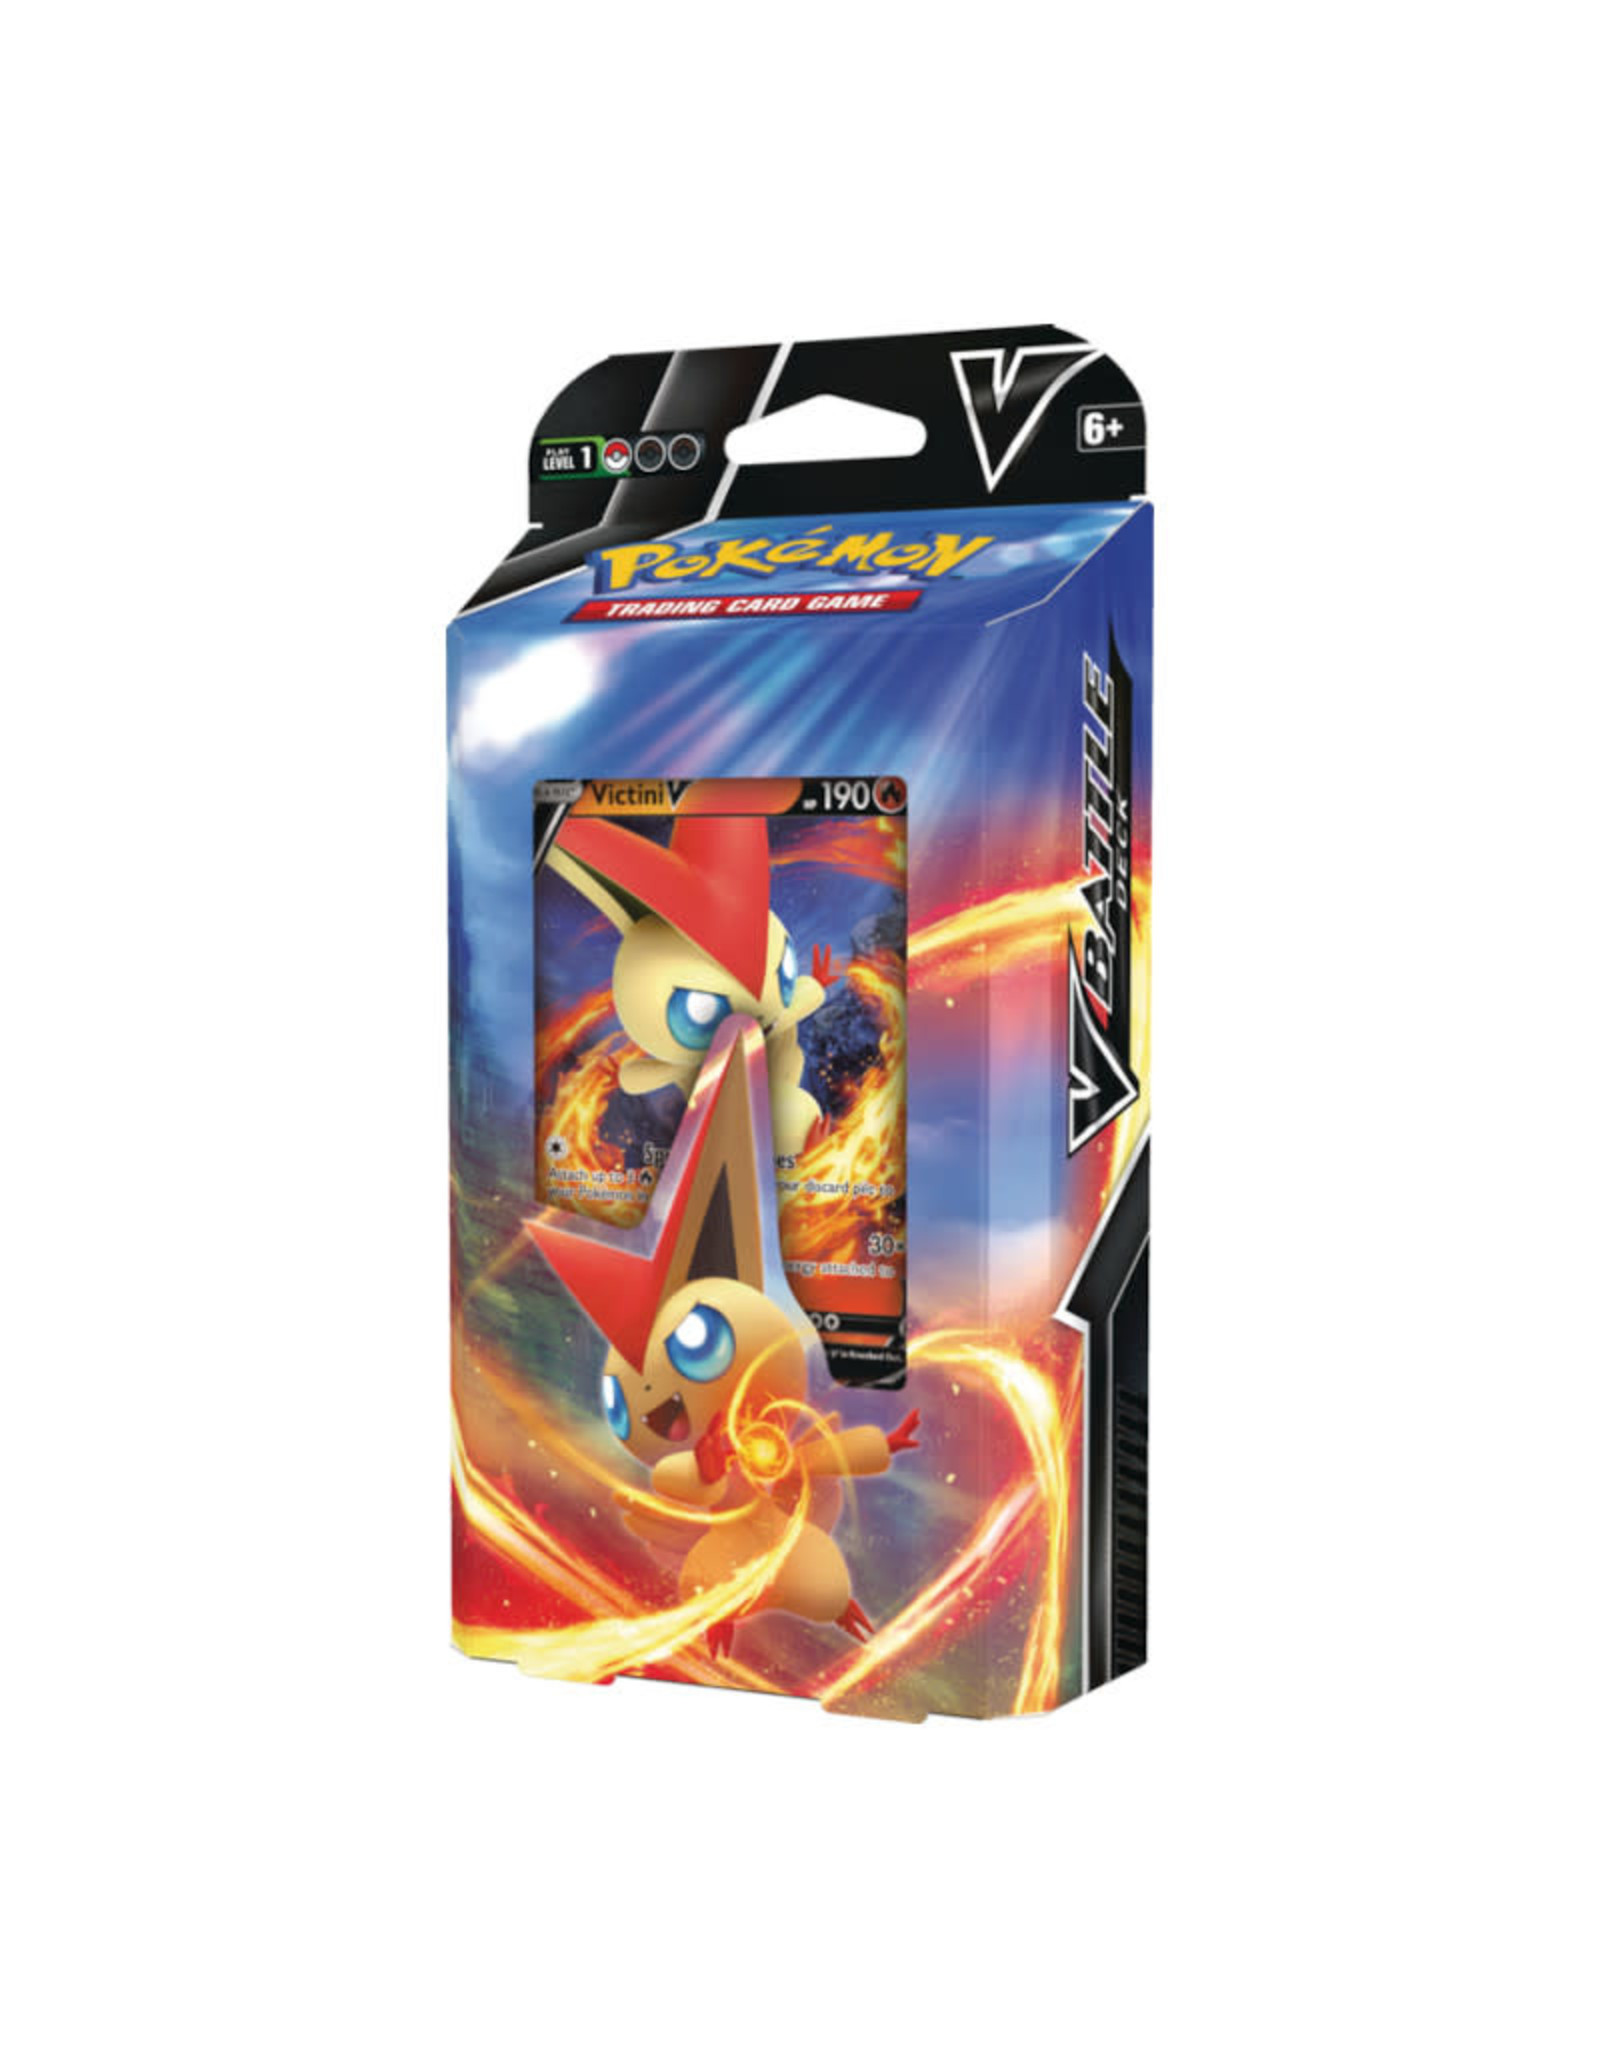 Pokemon Pokemon Battle Decks: Victini V (Pre-Order)